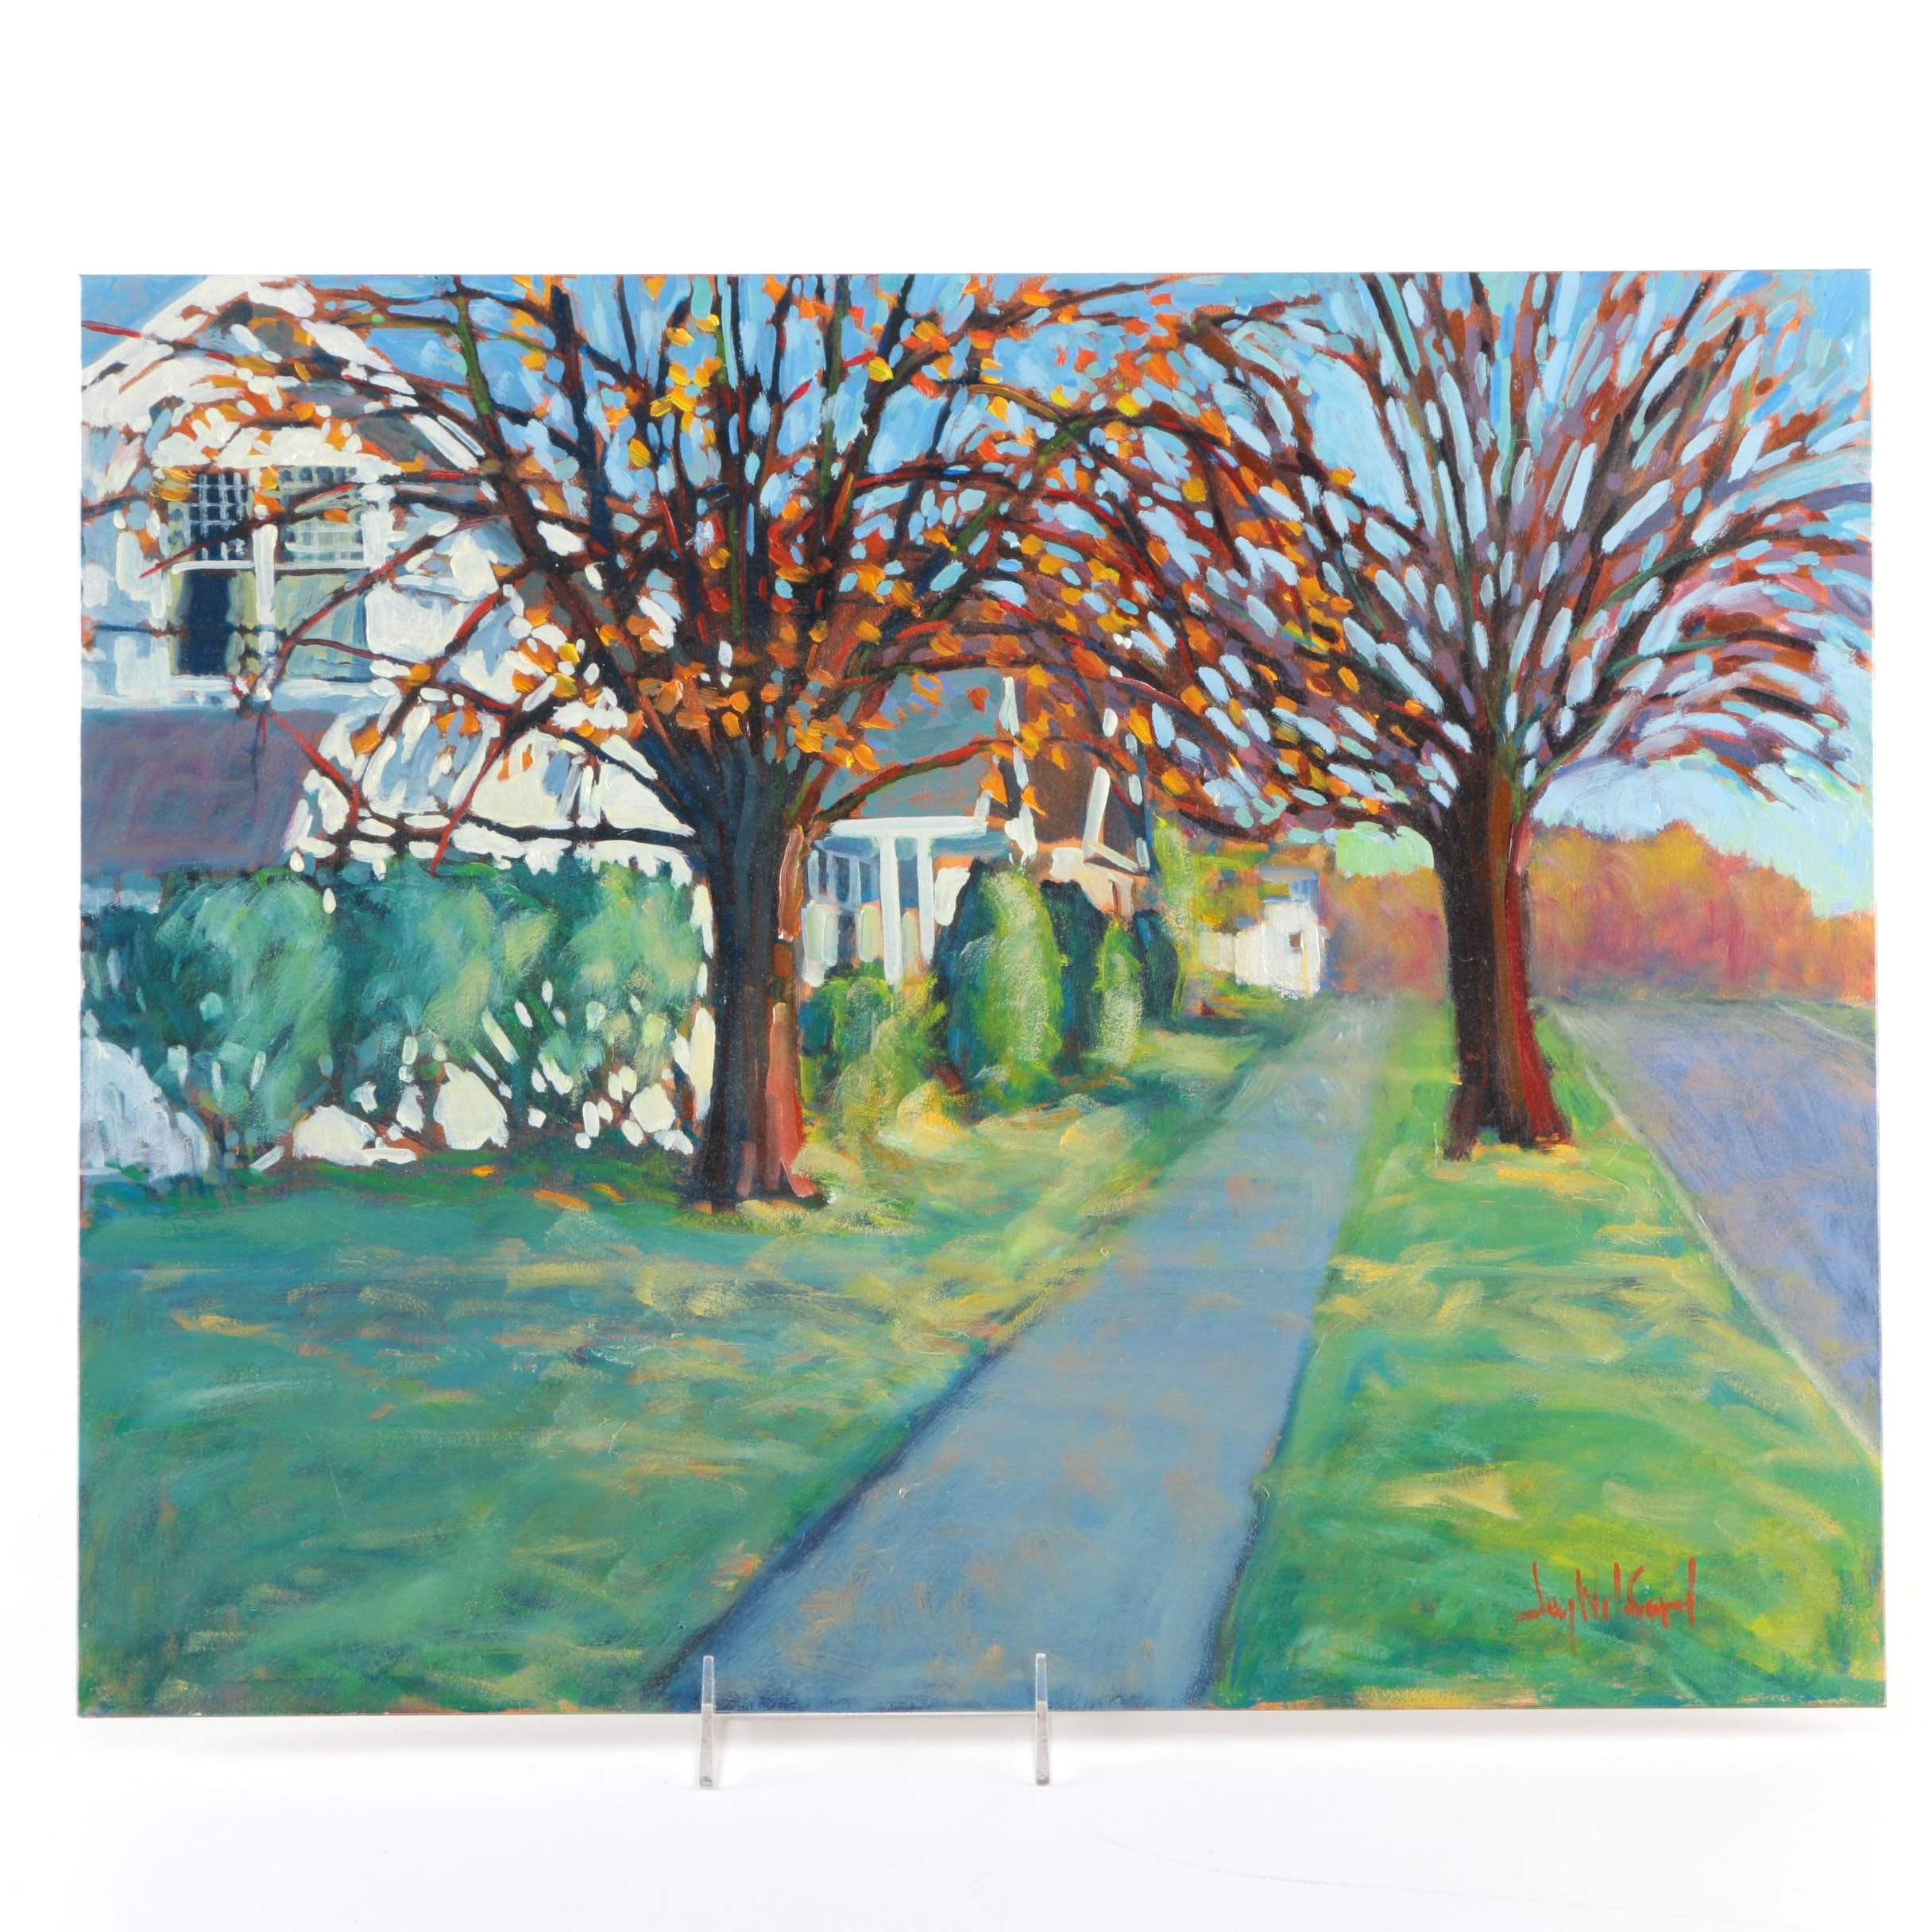 Jay Wilford Oil Painting on Claybord of Suburban Scene